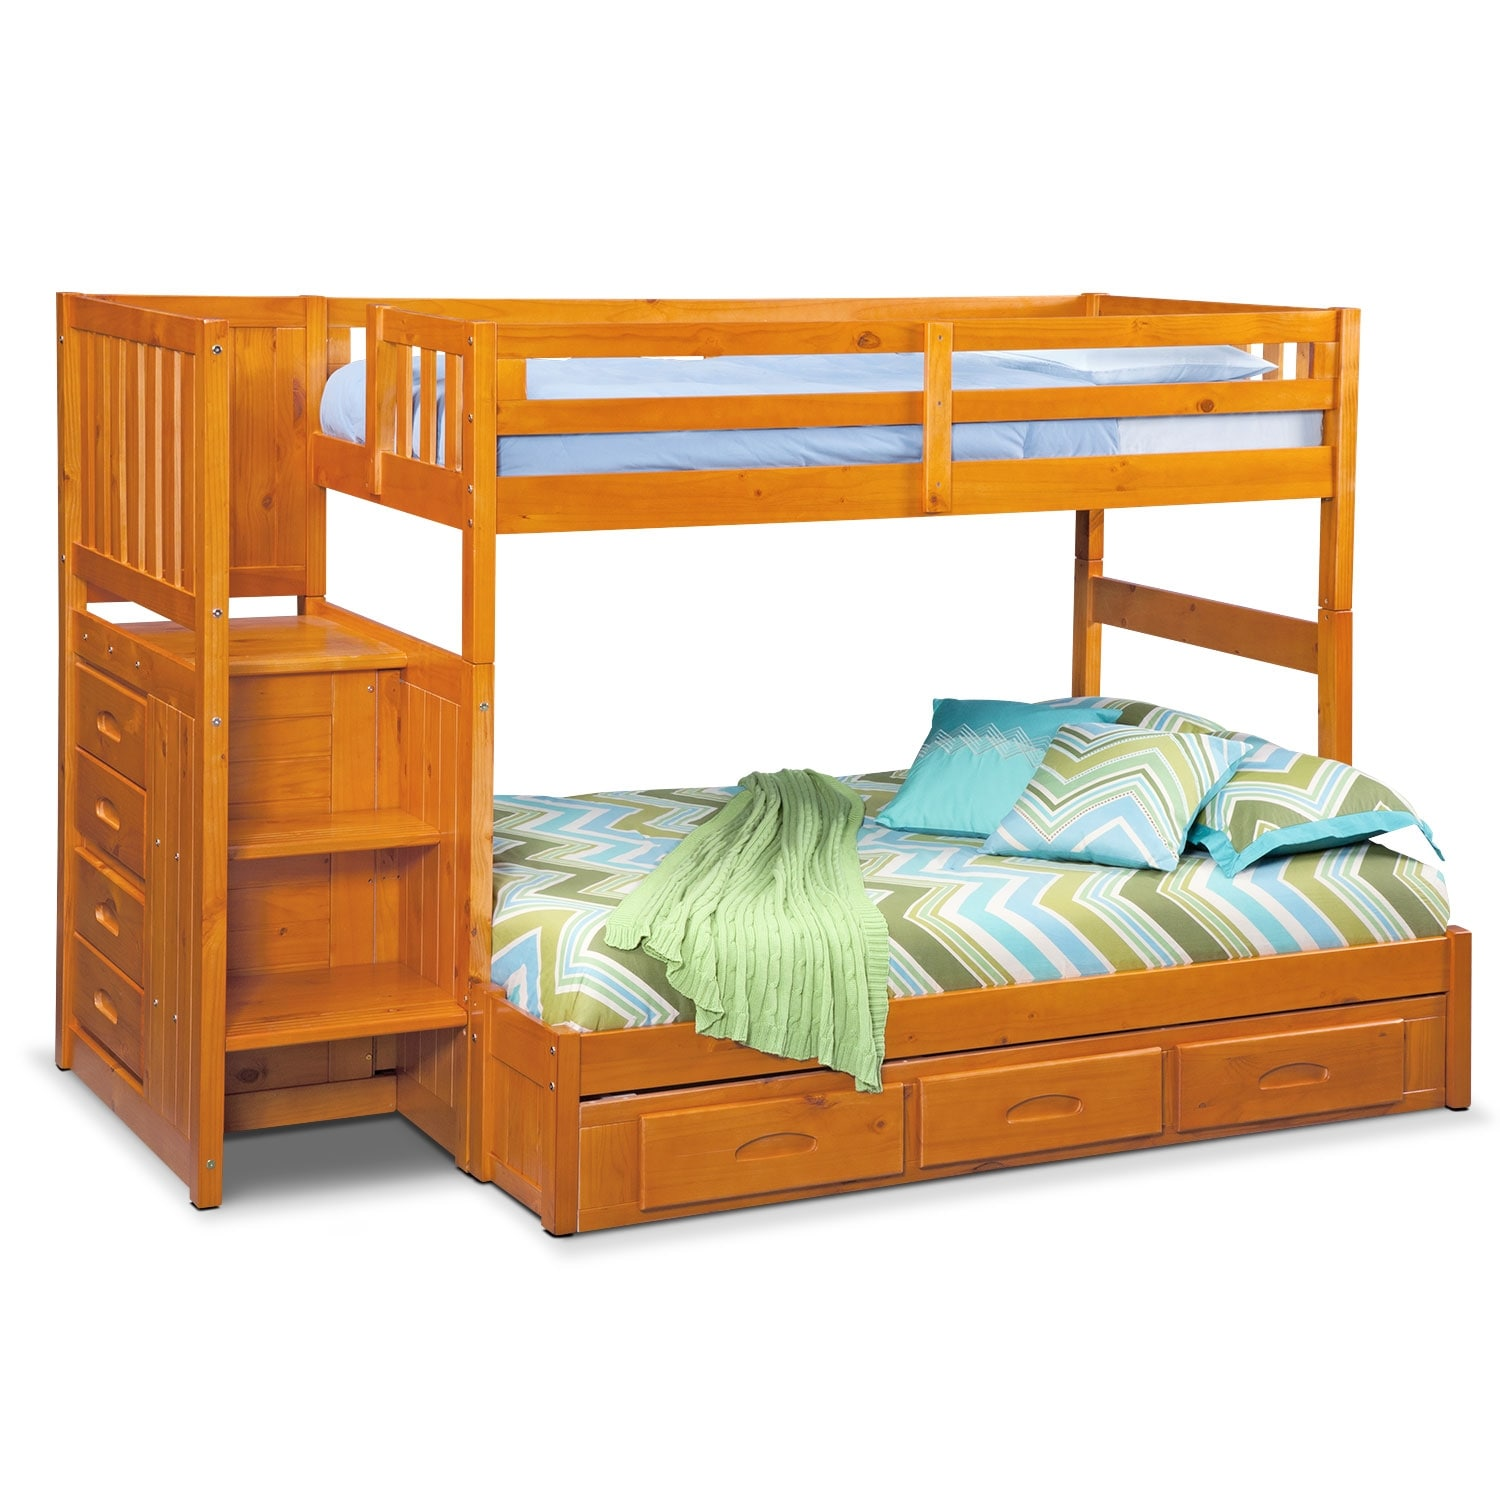 Kids Furniture - Ranger Pine Twin/Full Bunk Bed w/ Stairs and 7-Drawer Storage